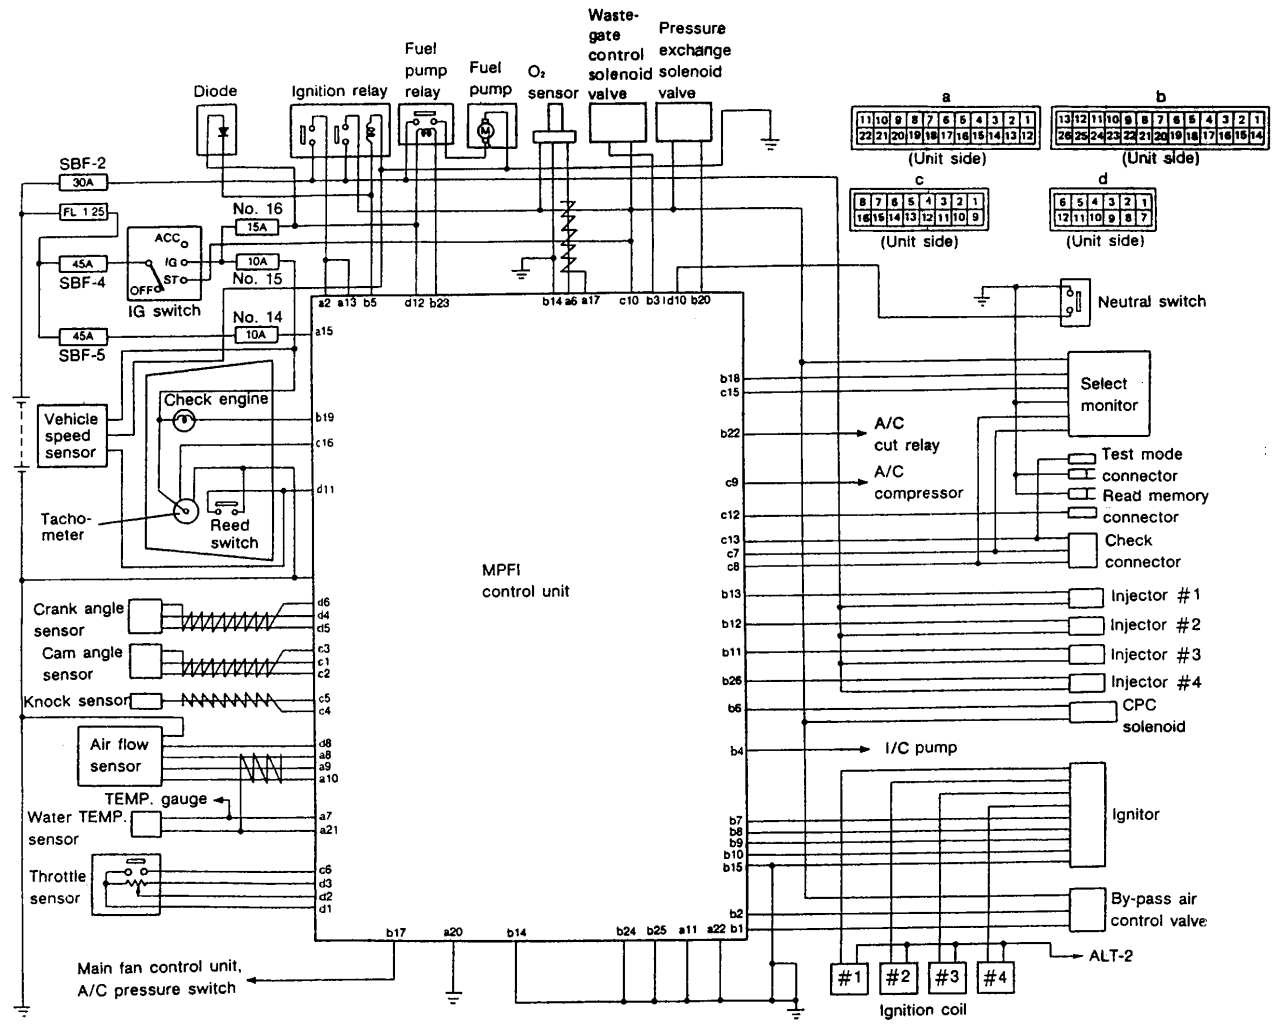 2002-2003 Subaru Non-turbo Impreza Brake Wiring Diagram